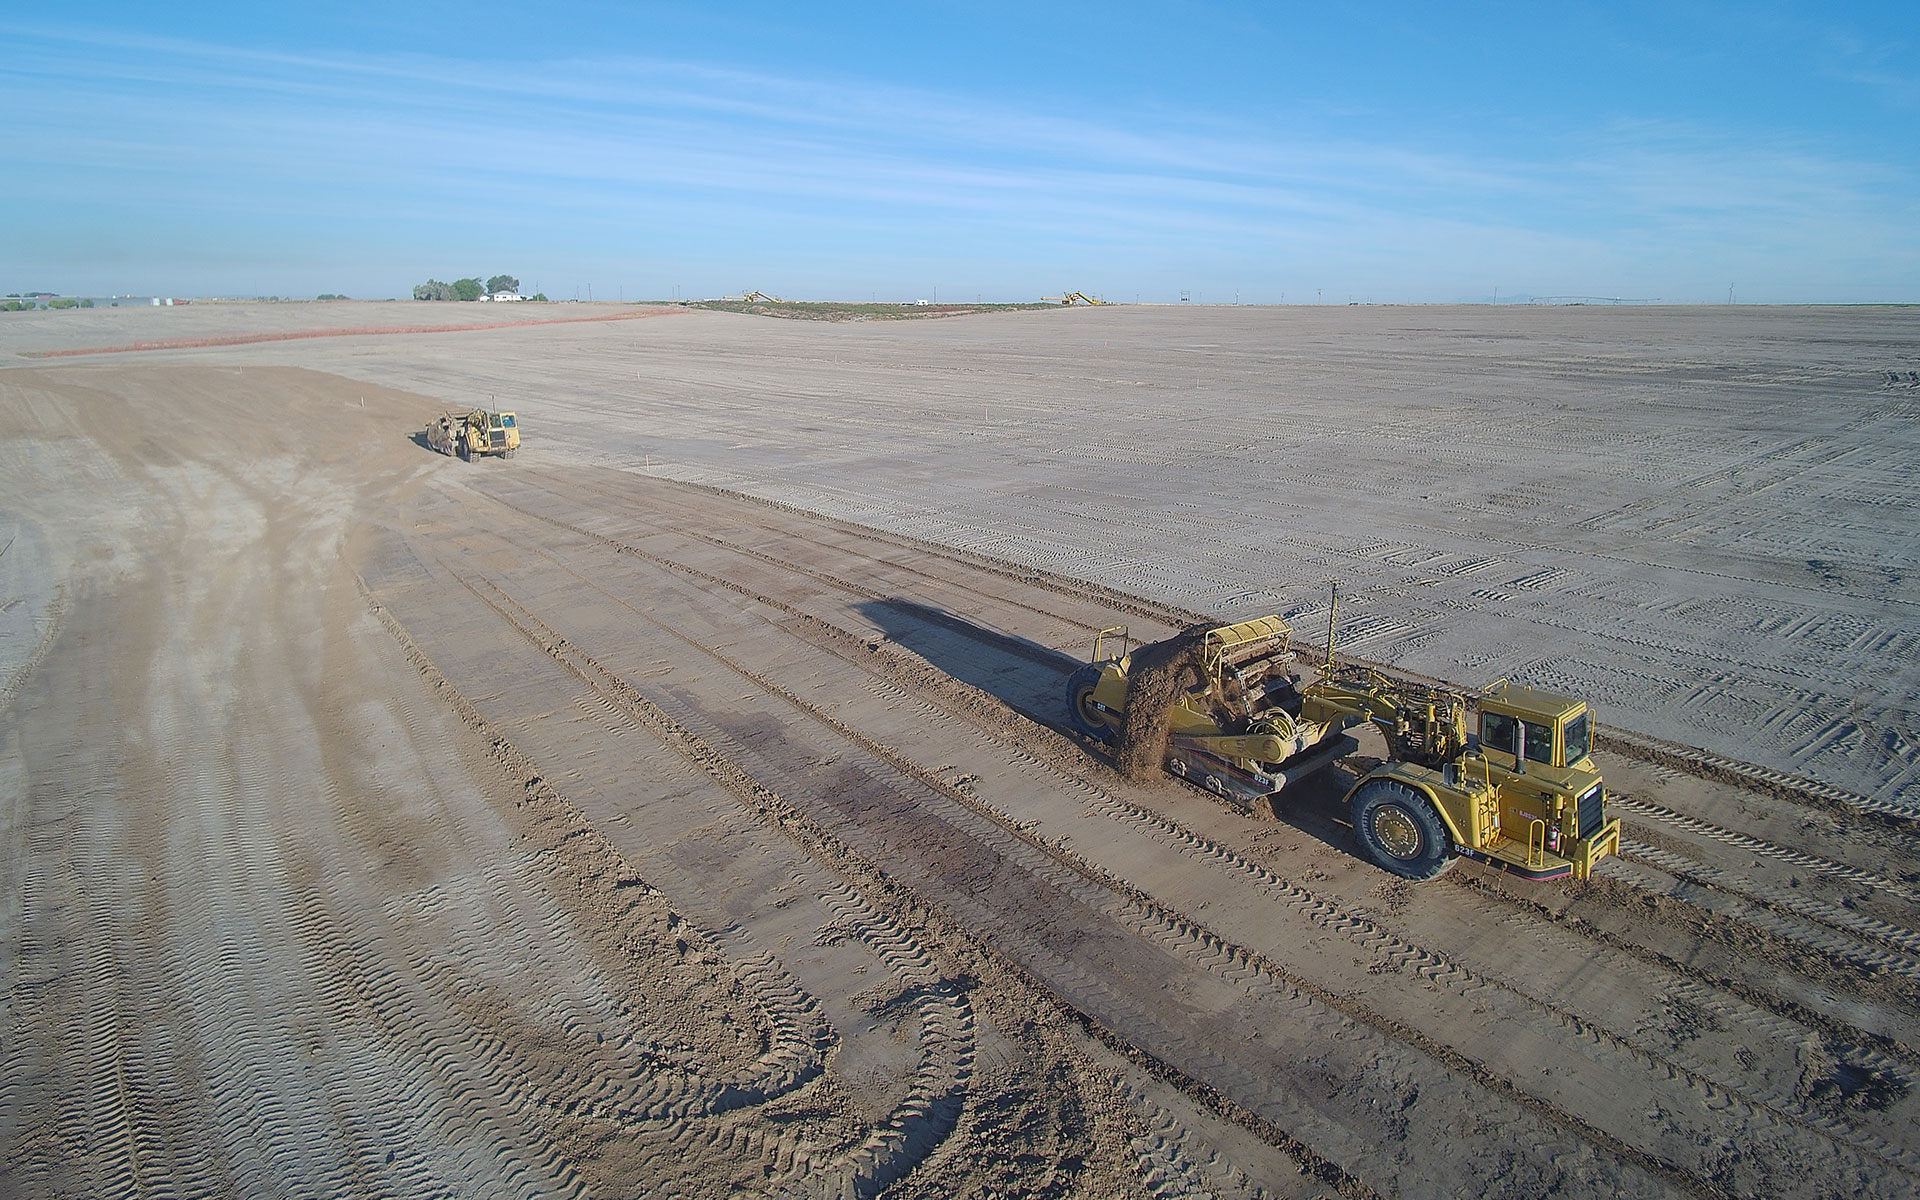 Aerial view of bulldozer leveling dirt lot